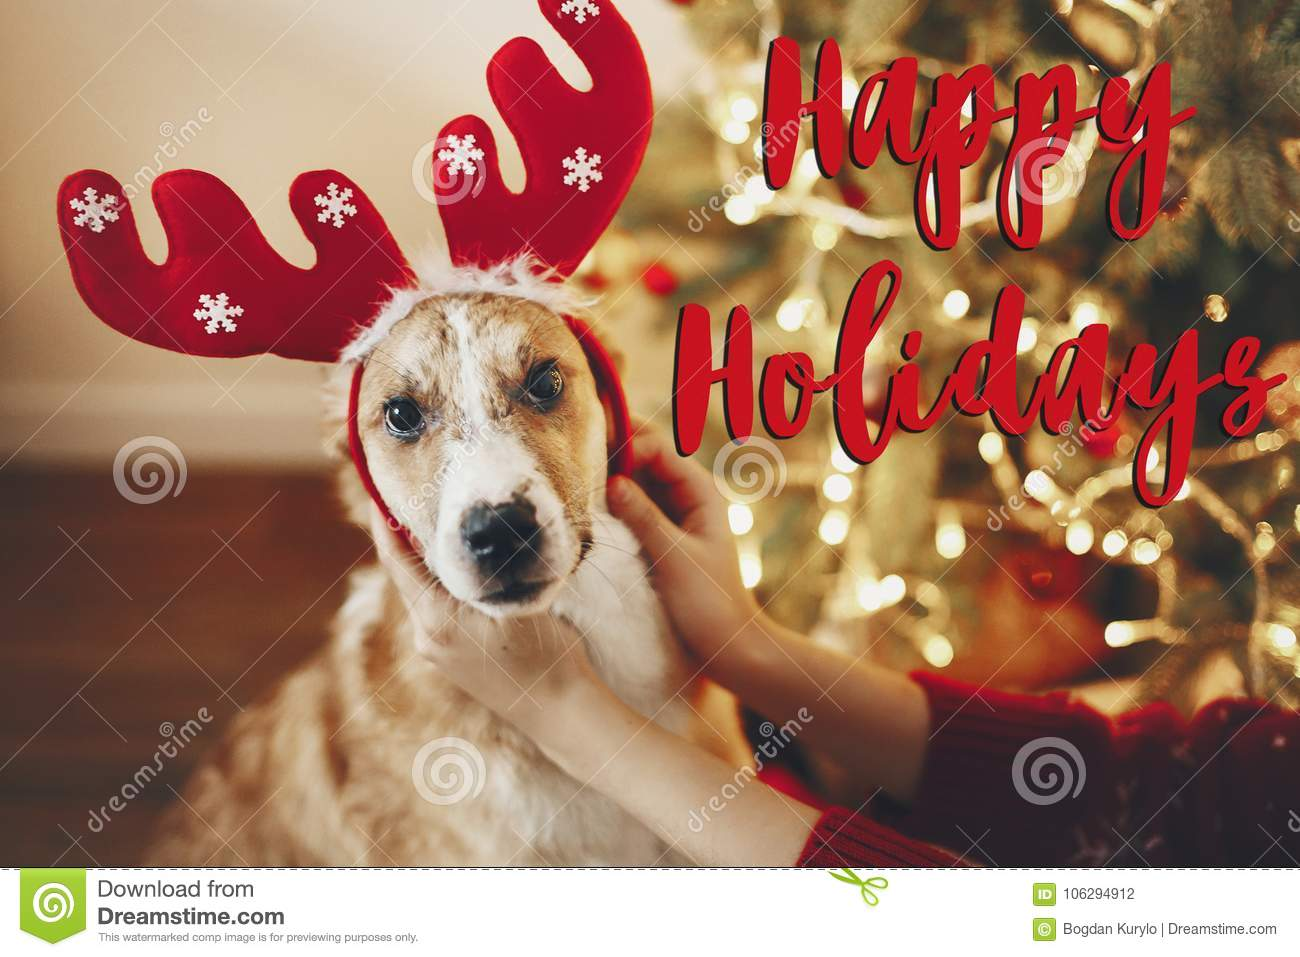 happy holidays text, seasons greetings, merry christmas and happy new year concept. cute dog in reindeer hat sitting at christmas